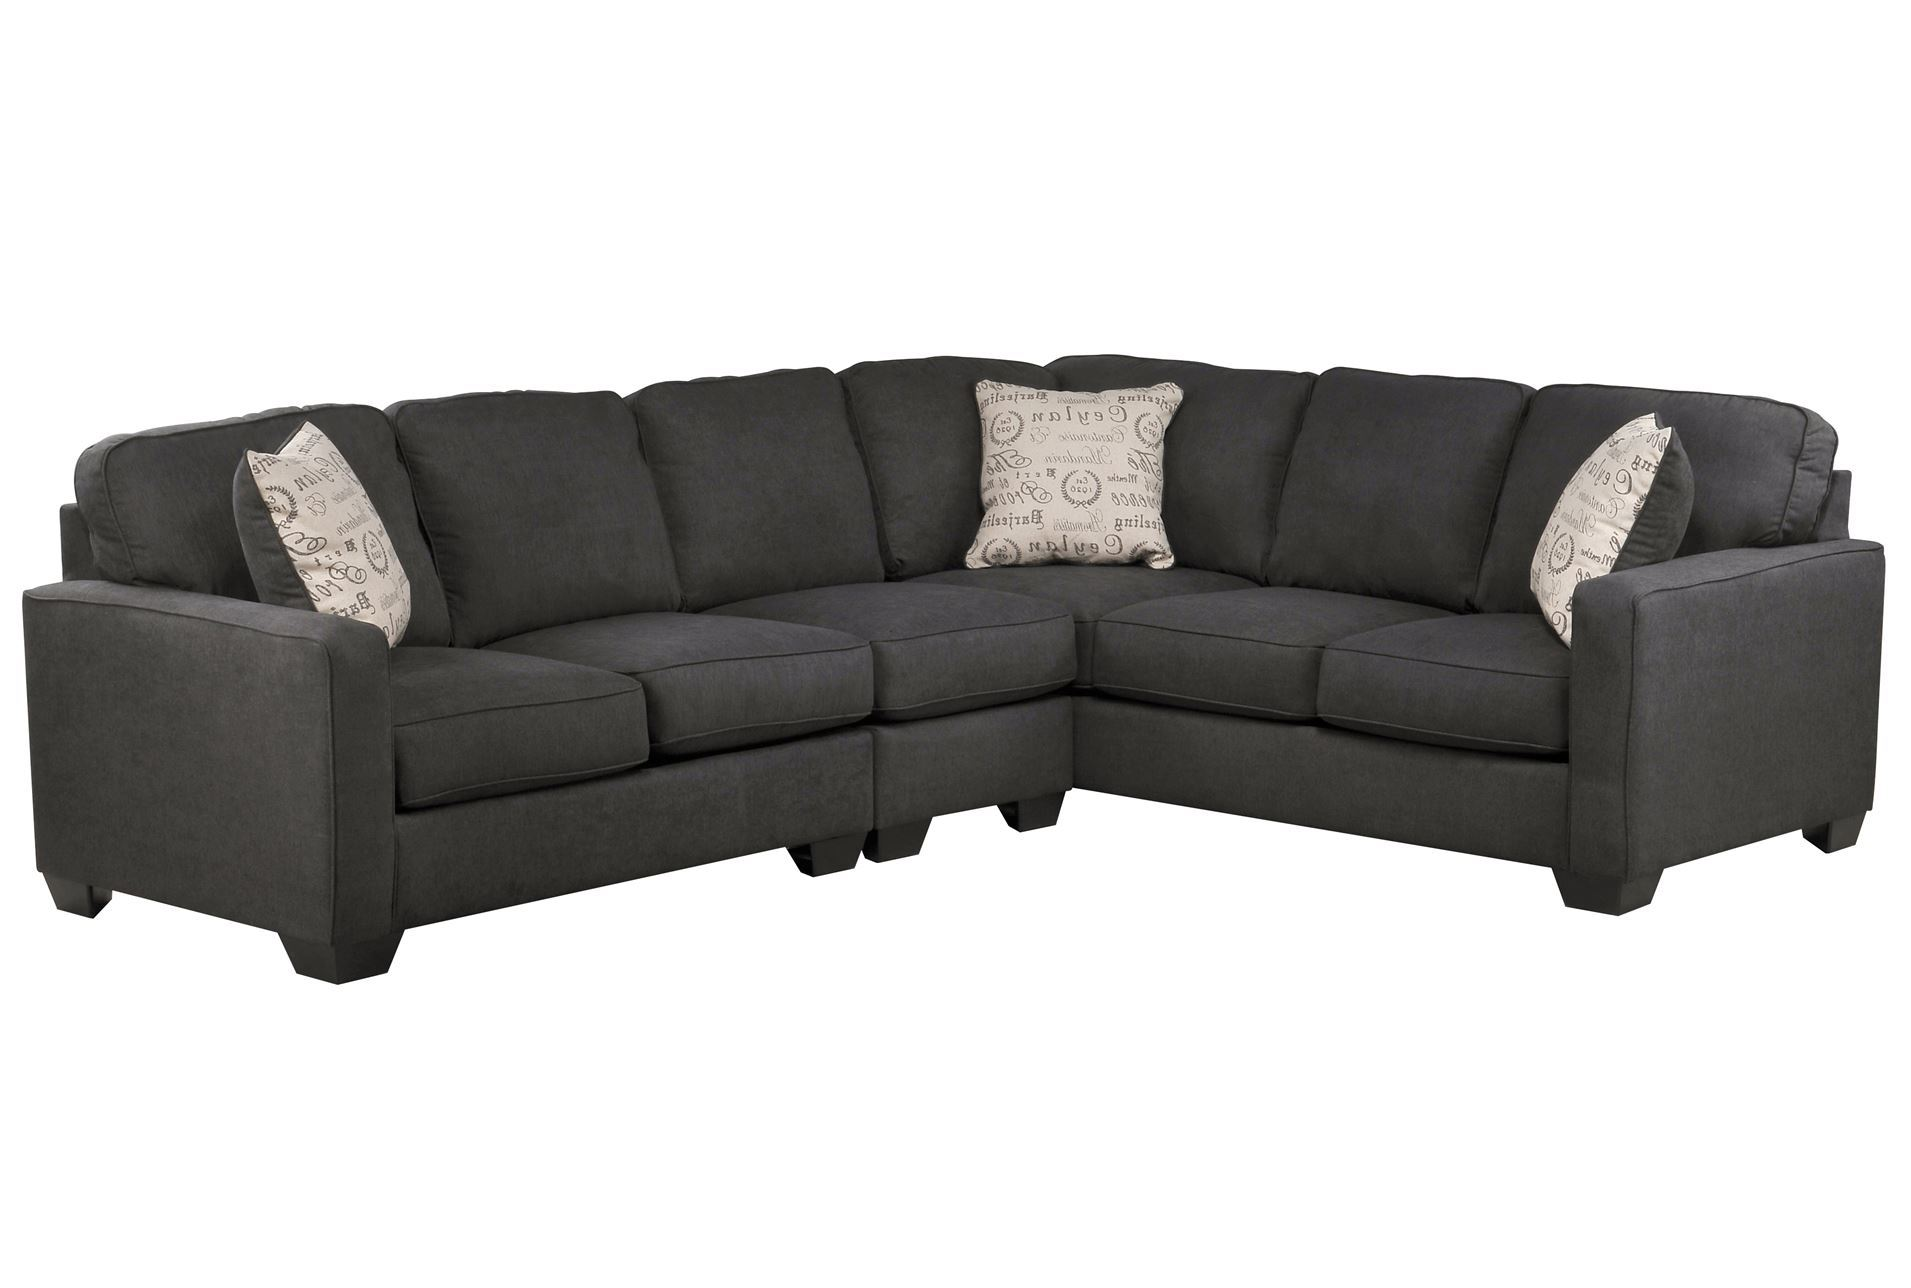 Alenya charcoal 3 piece sectional w laf loveseat living for Living spaces sofas